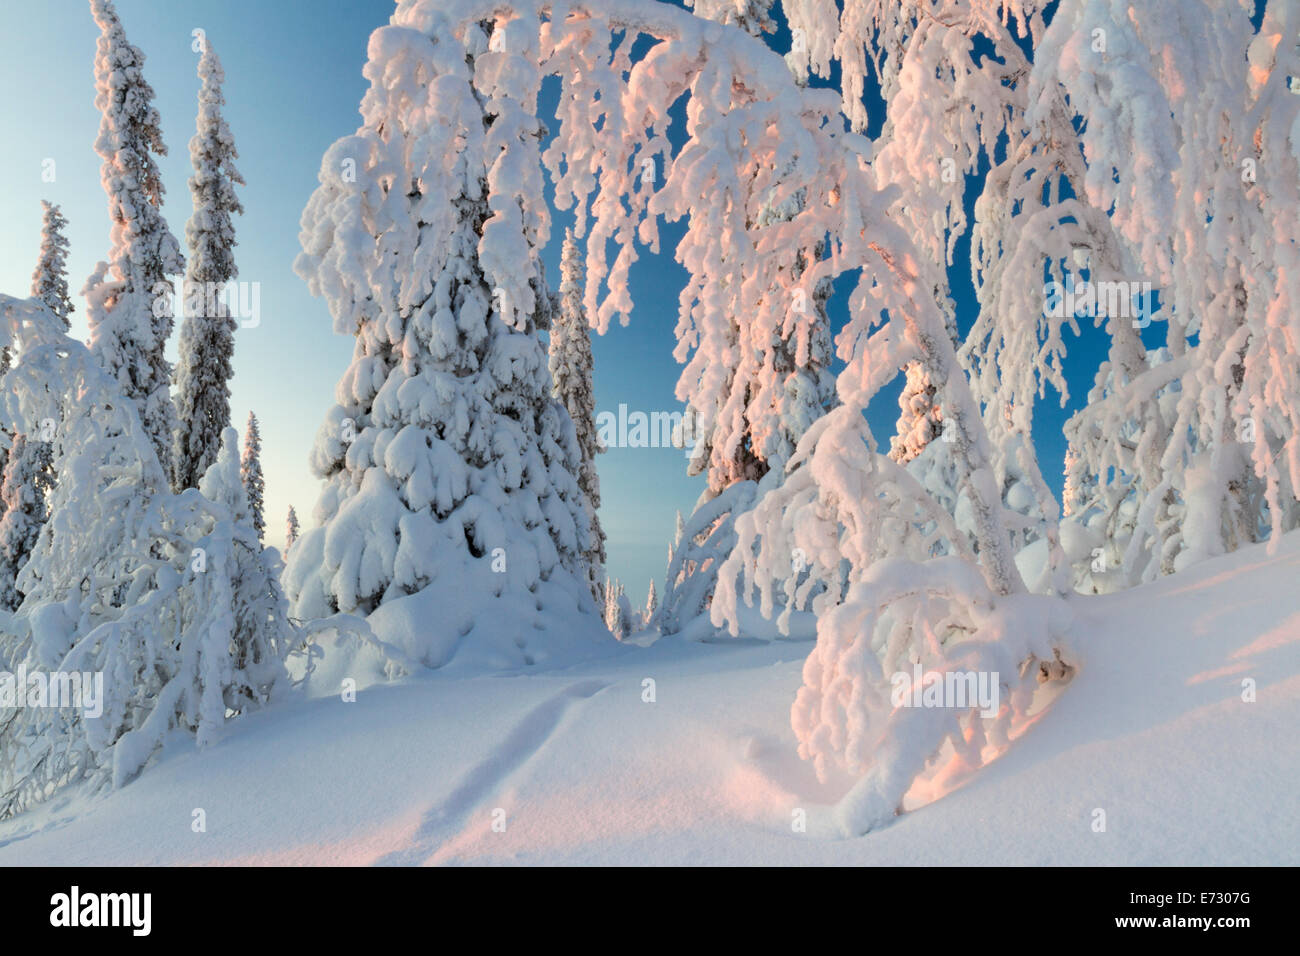 Winter landscape with snow hang on spruces and birches - Stock Image